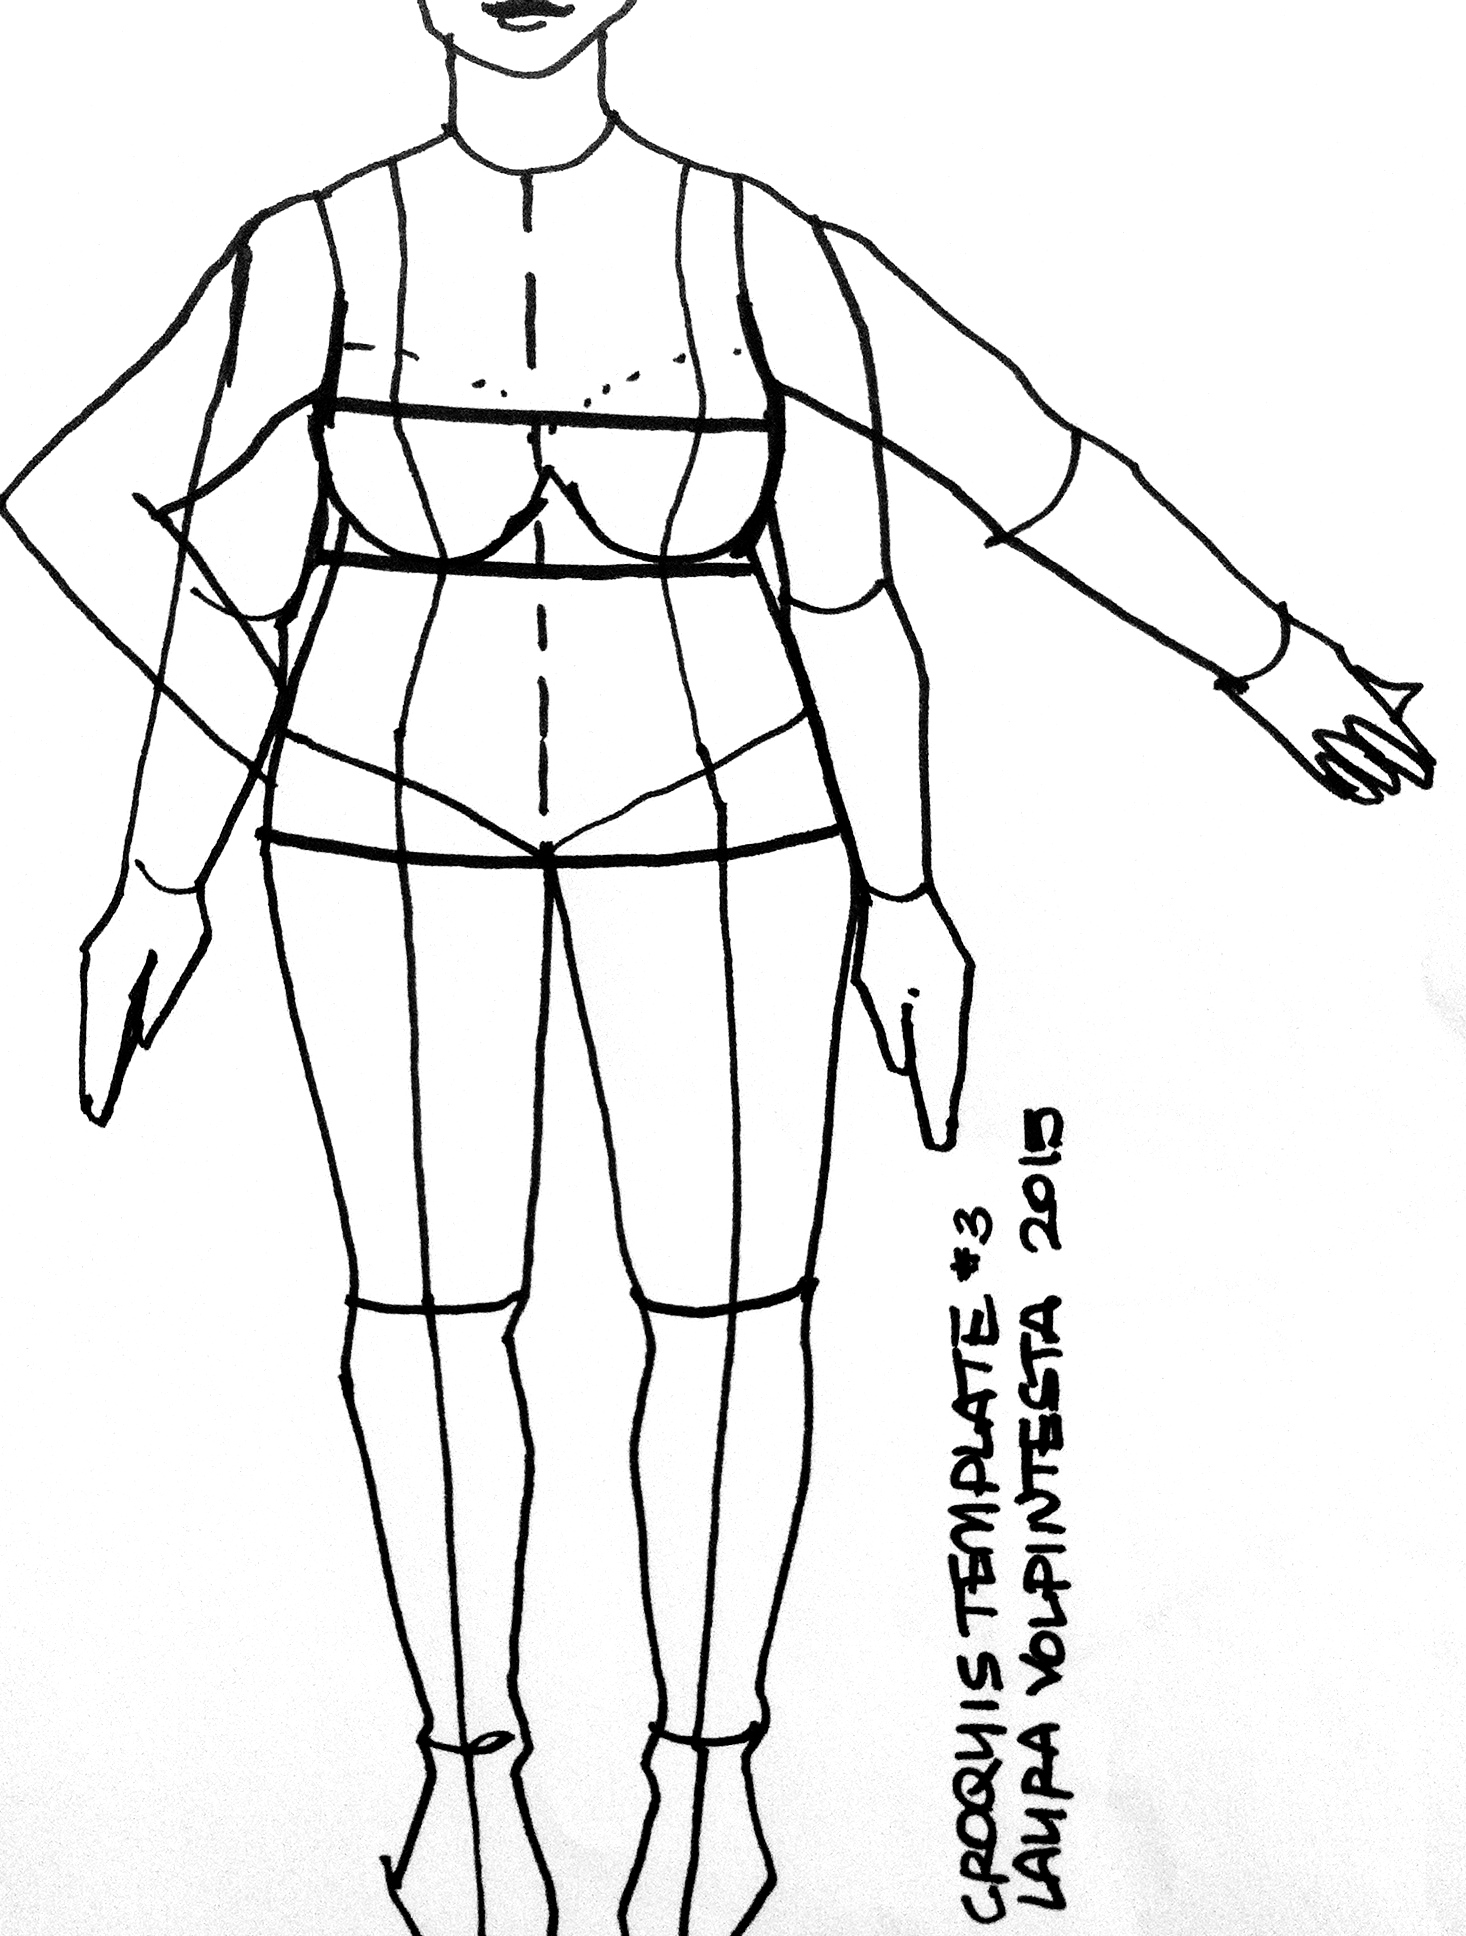 Plus size fashion croquis templates really. All